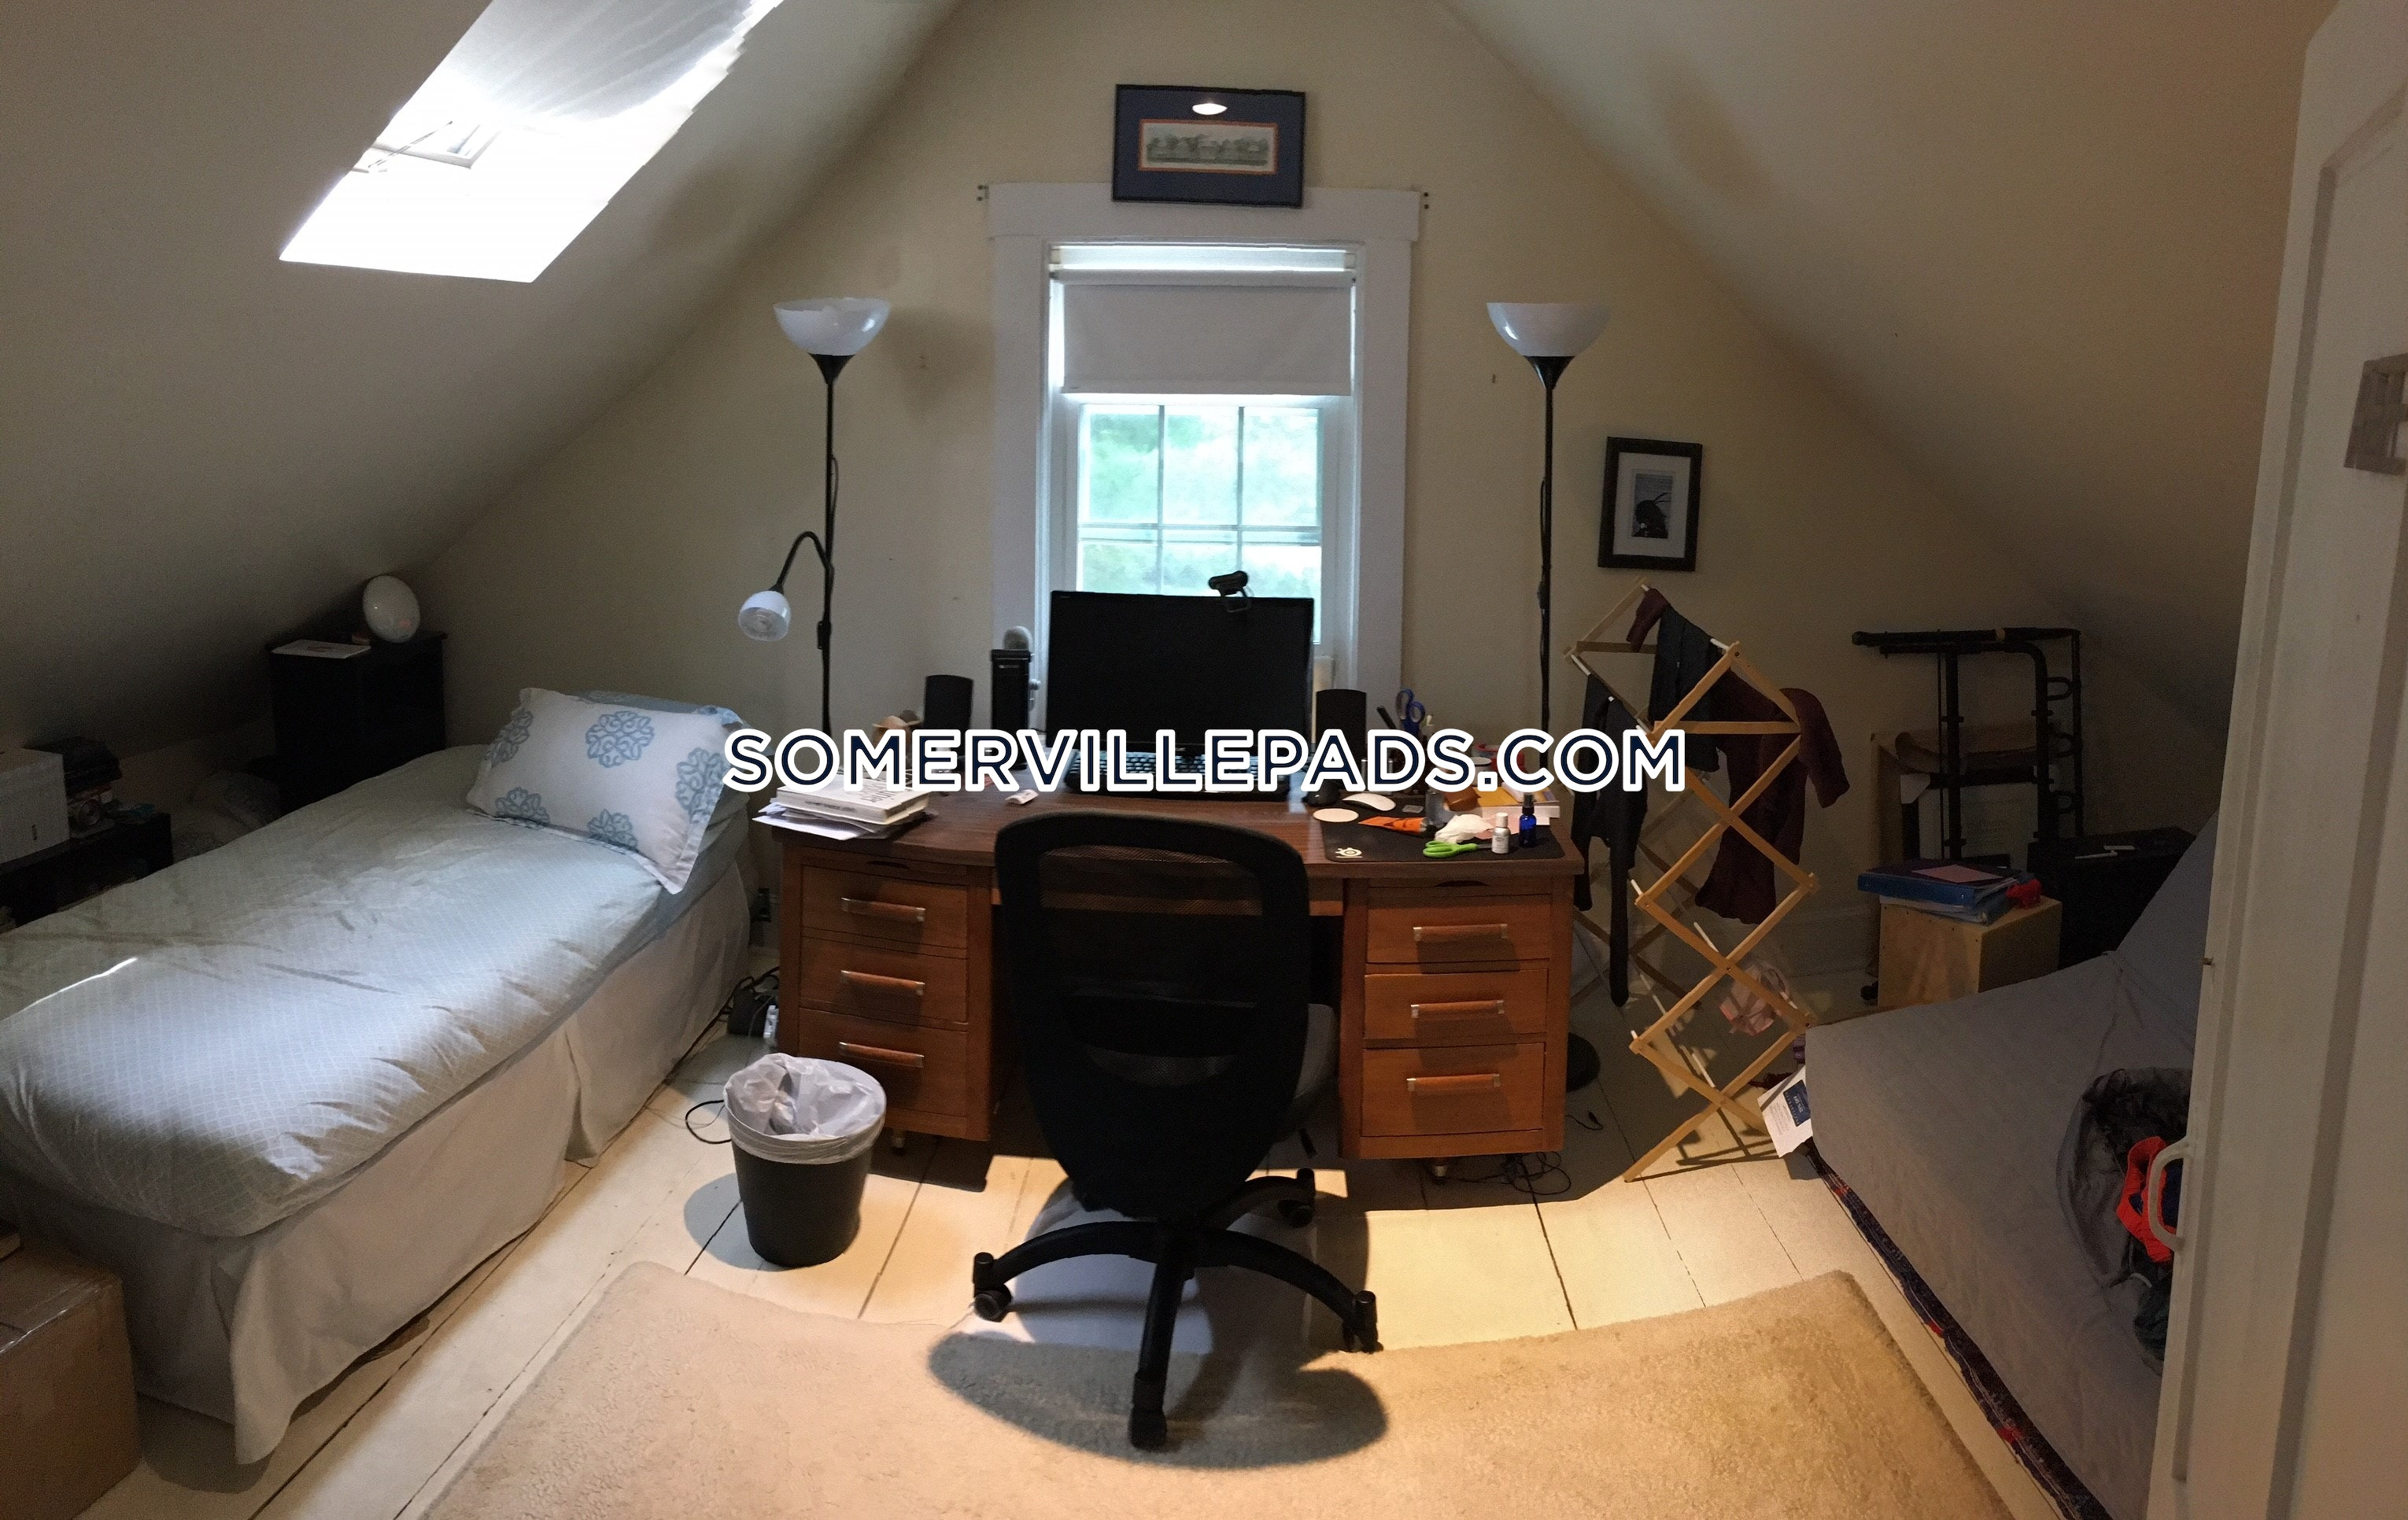 3-beds-15-baths-somerville-dali-inman-squares-2500-449249